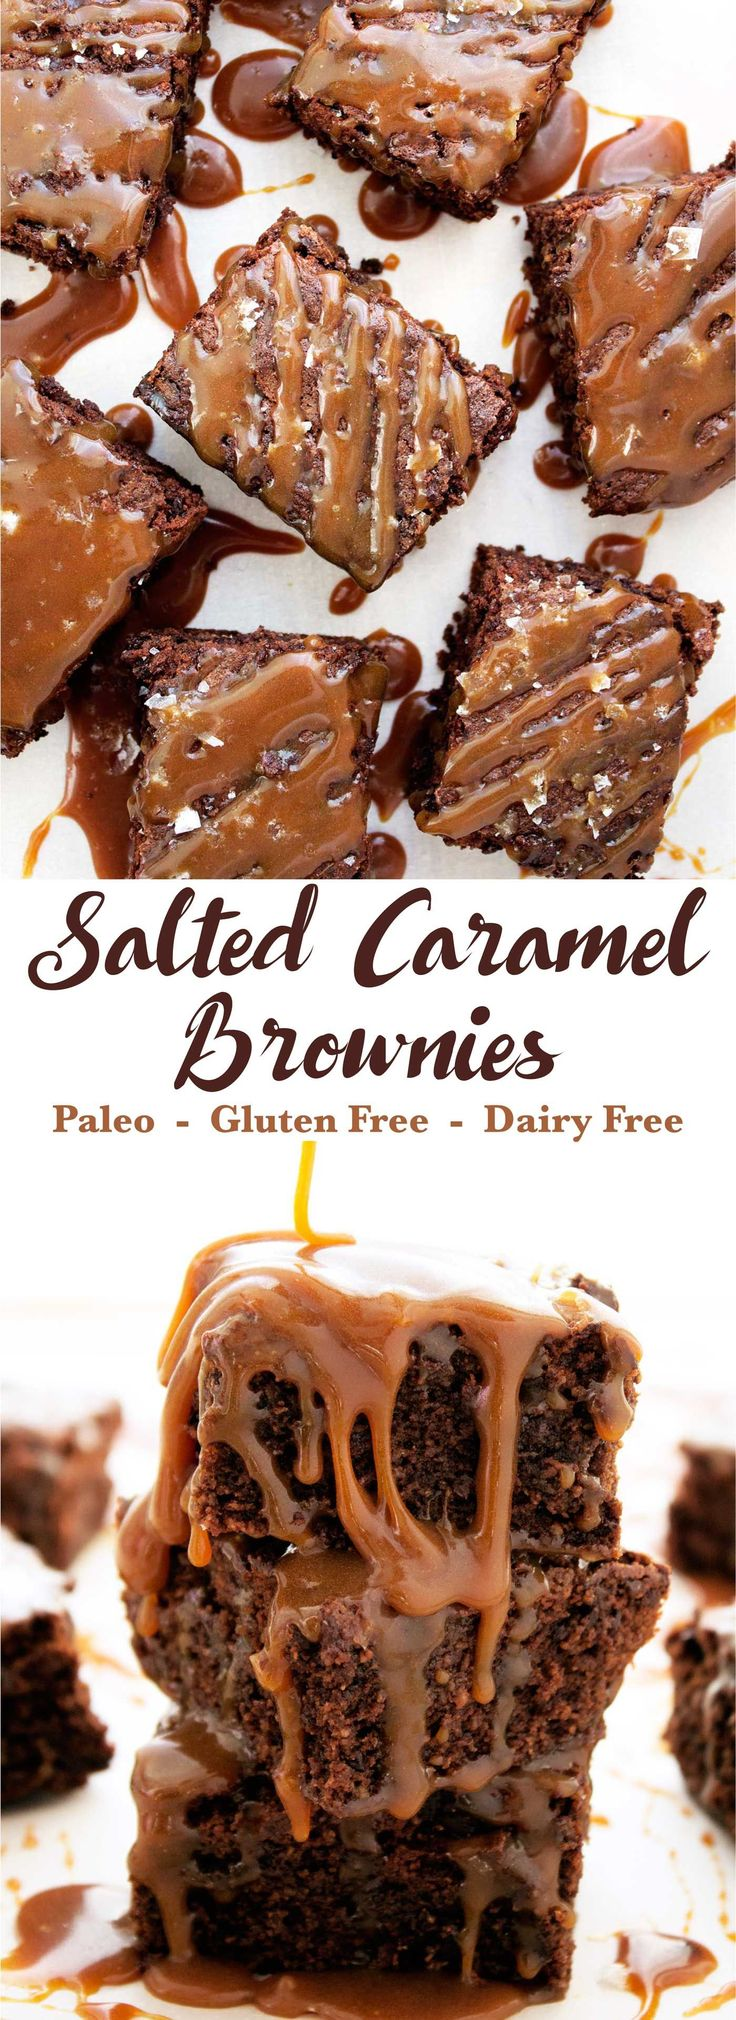 Super decadent, chocolatey, and covered with delicious ooey gooey caramel sauce. The perfect paleo indulgence. Paleo, gluten free, dairy free.